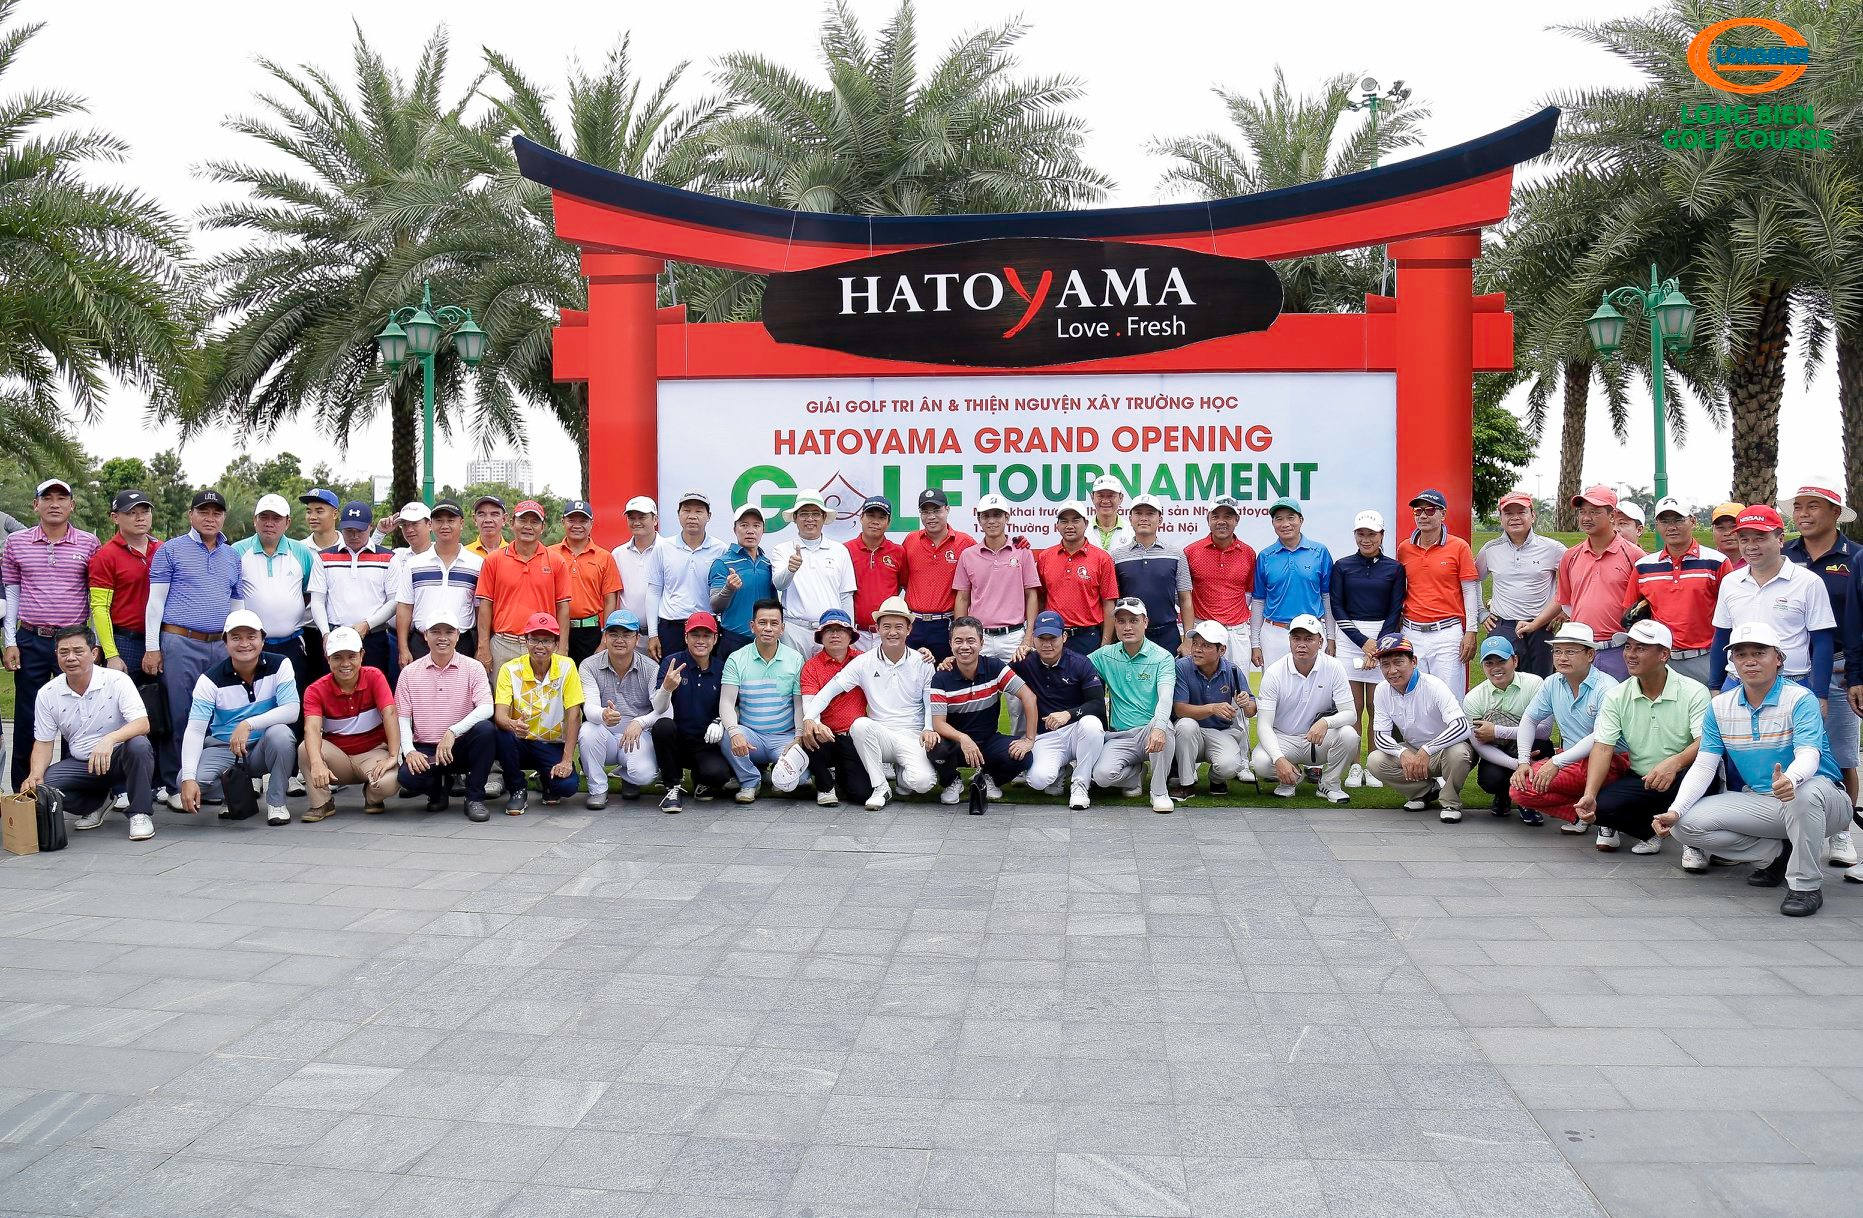 HATOYAMA GRAND OPENING GOLF TOURNAMENT